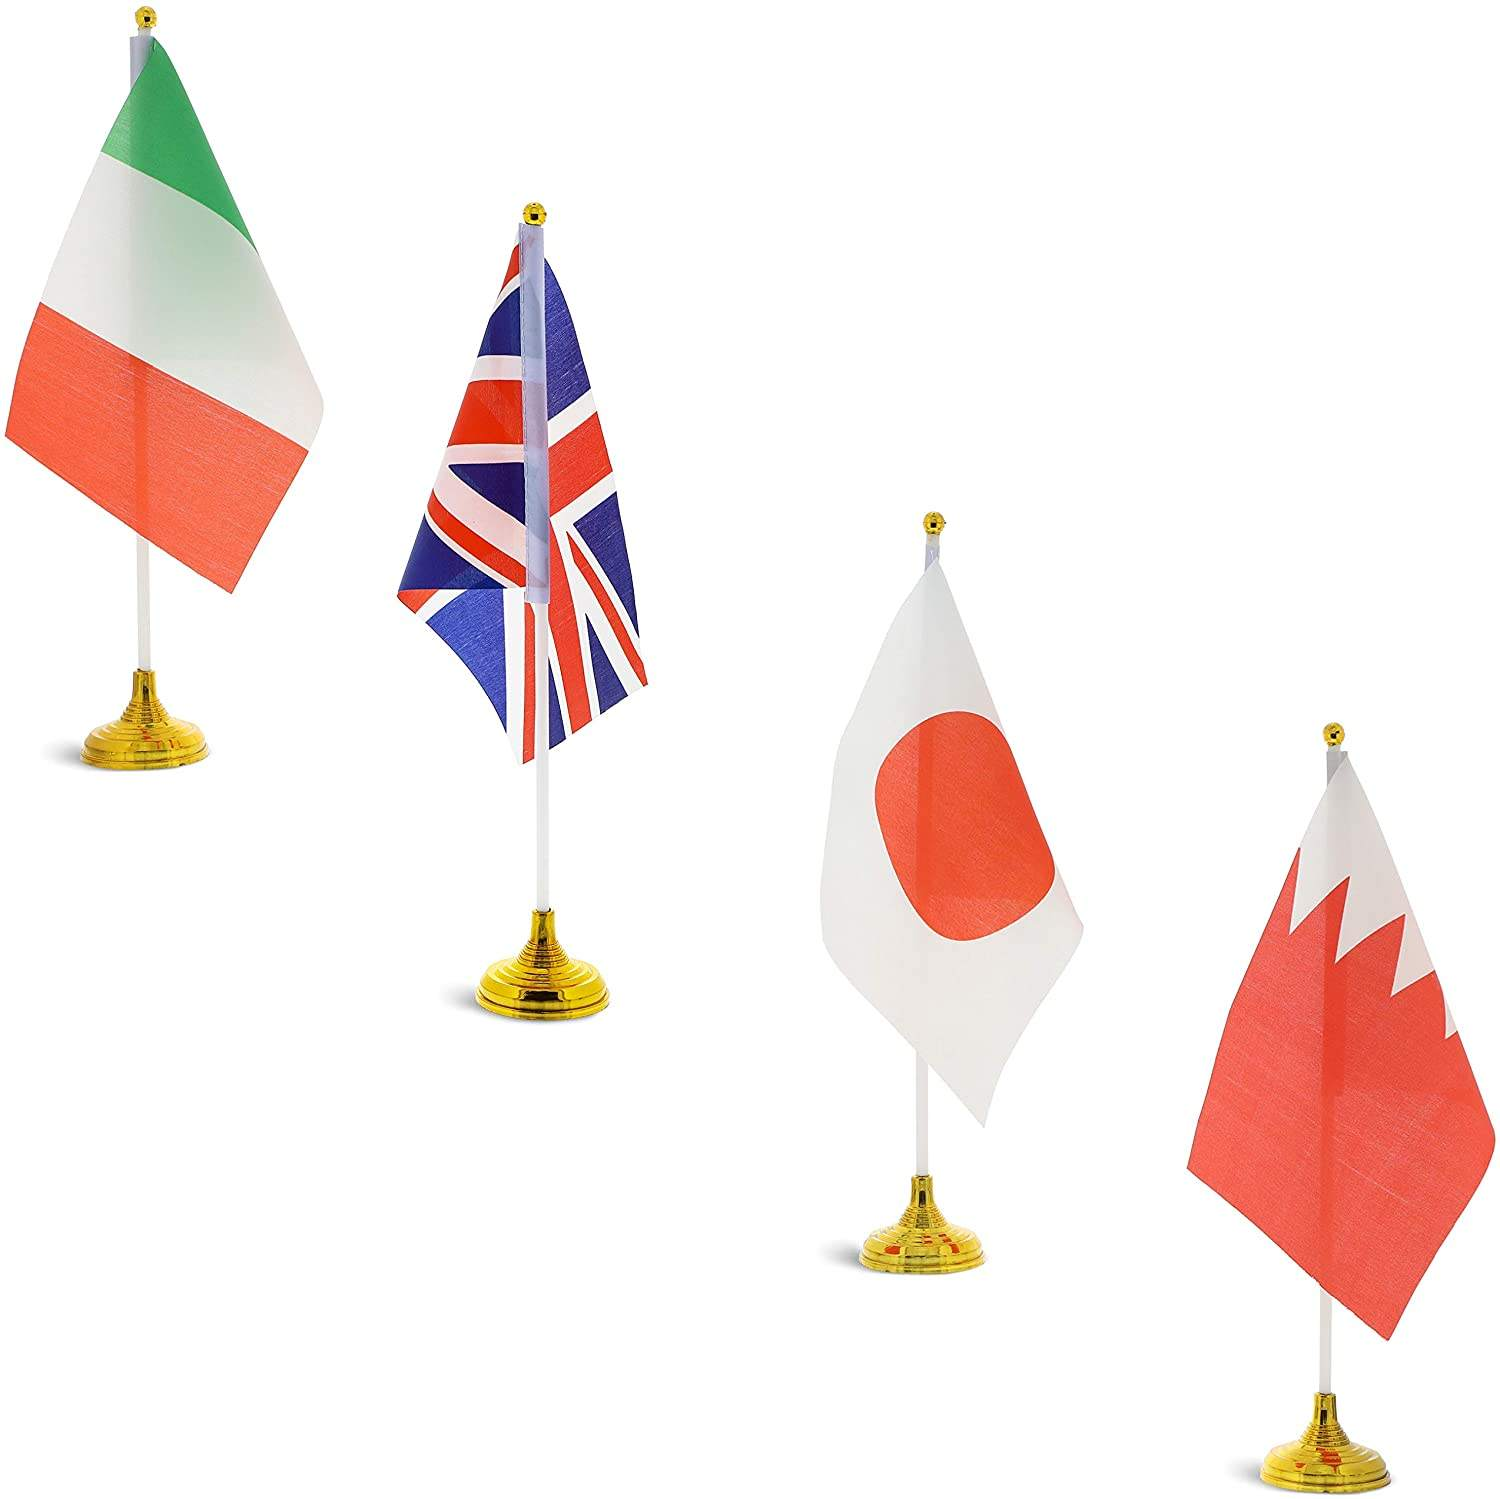 International World Country Desk Flags with Stands 8.3 x 5.5 Polyester Falg